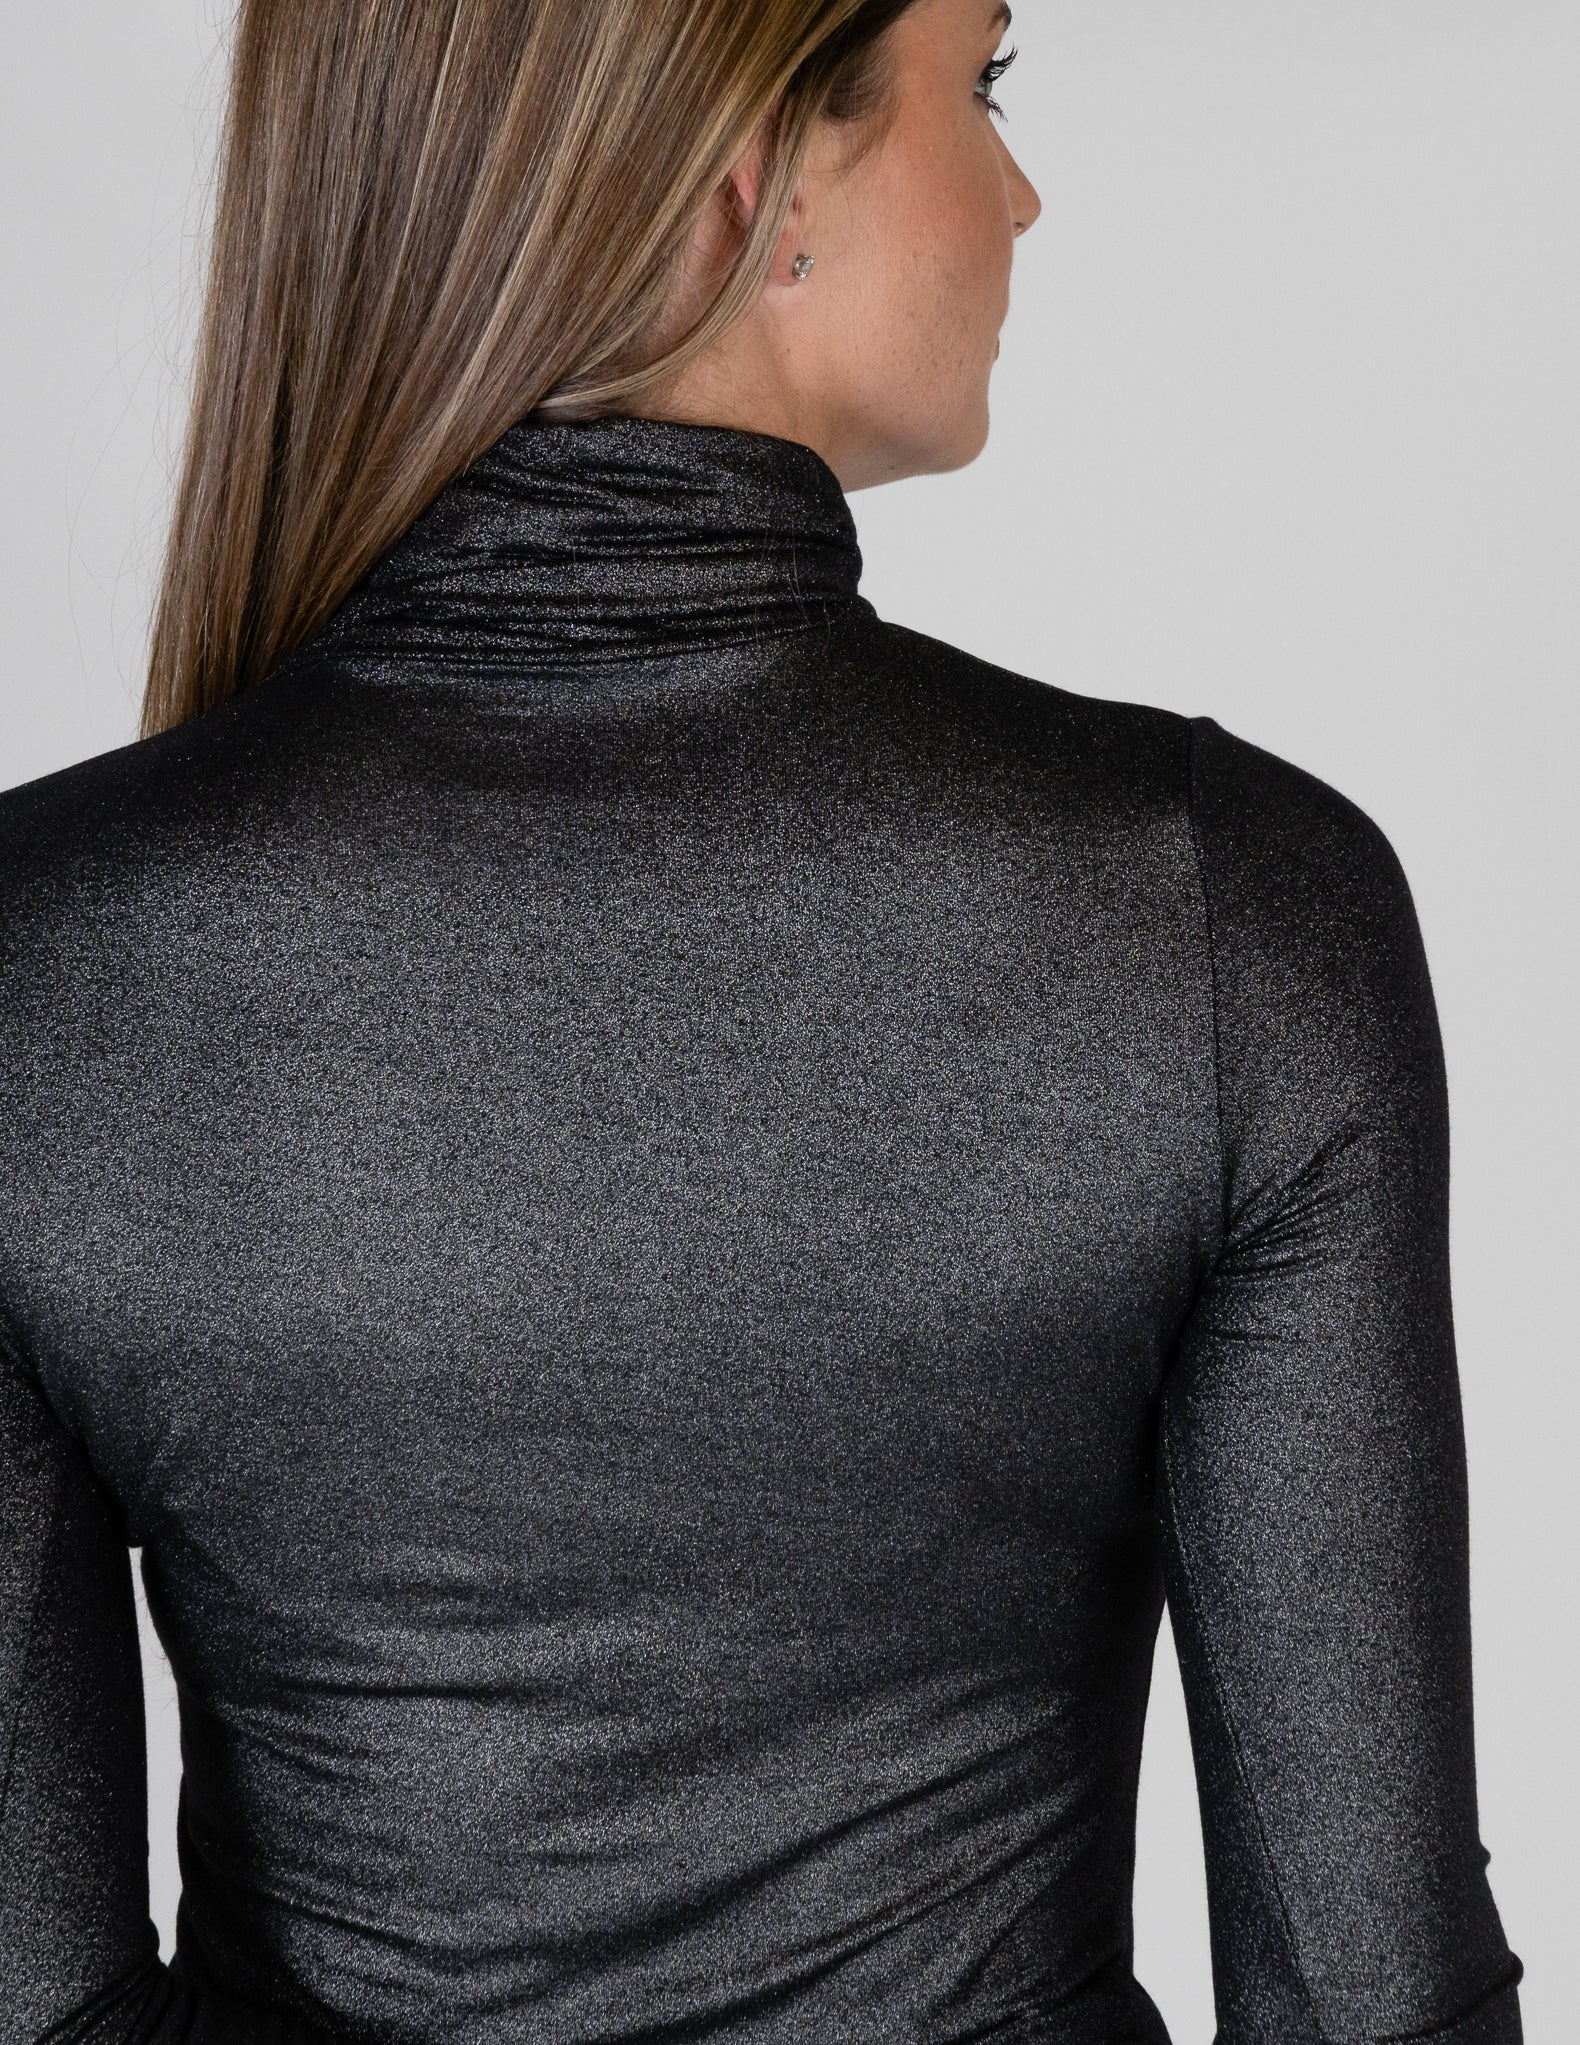 Majestic Metallic Long Sleeve Turtleneck in Metal Black